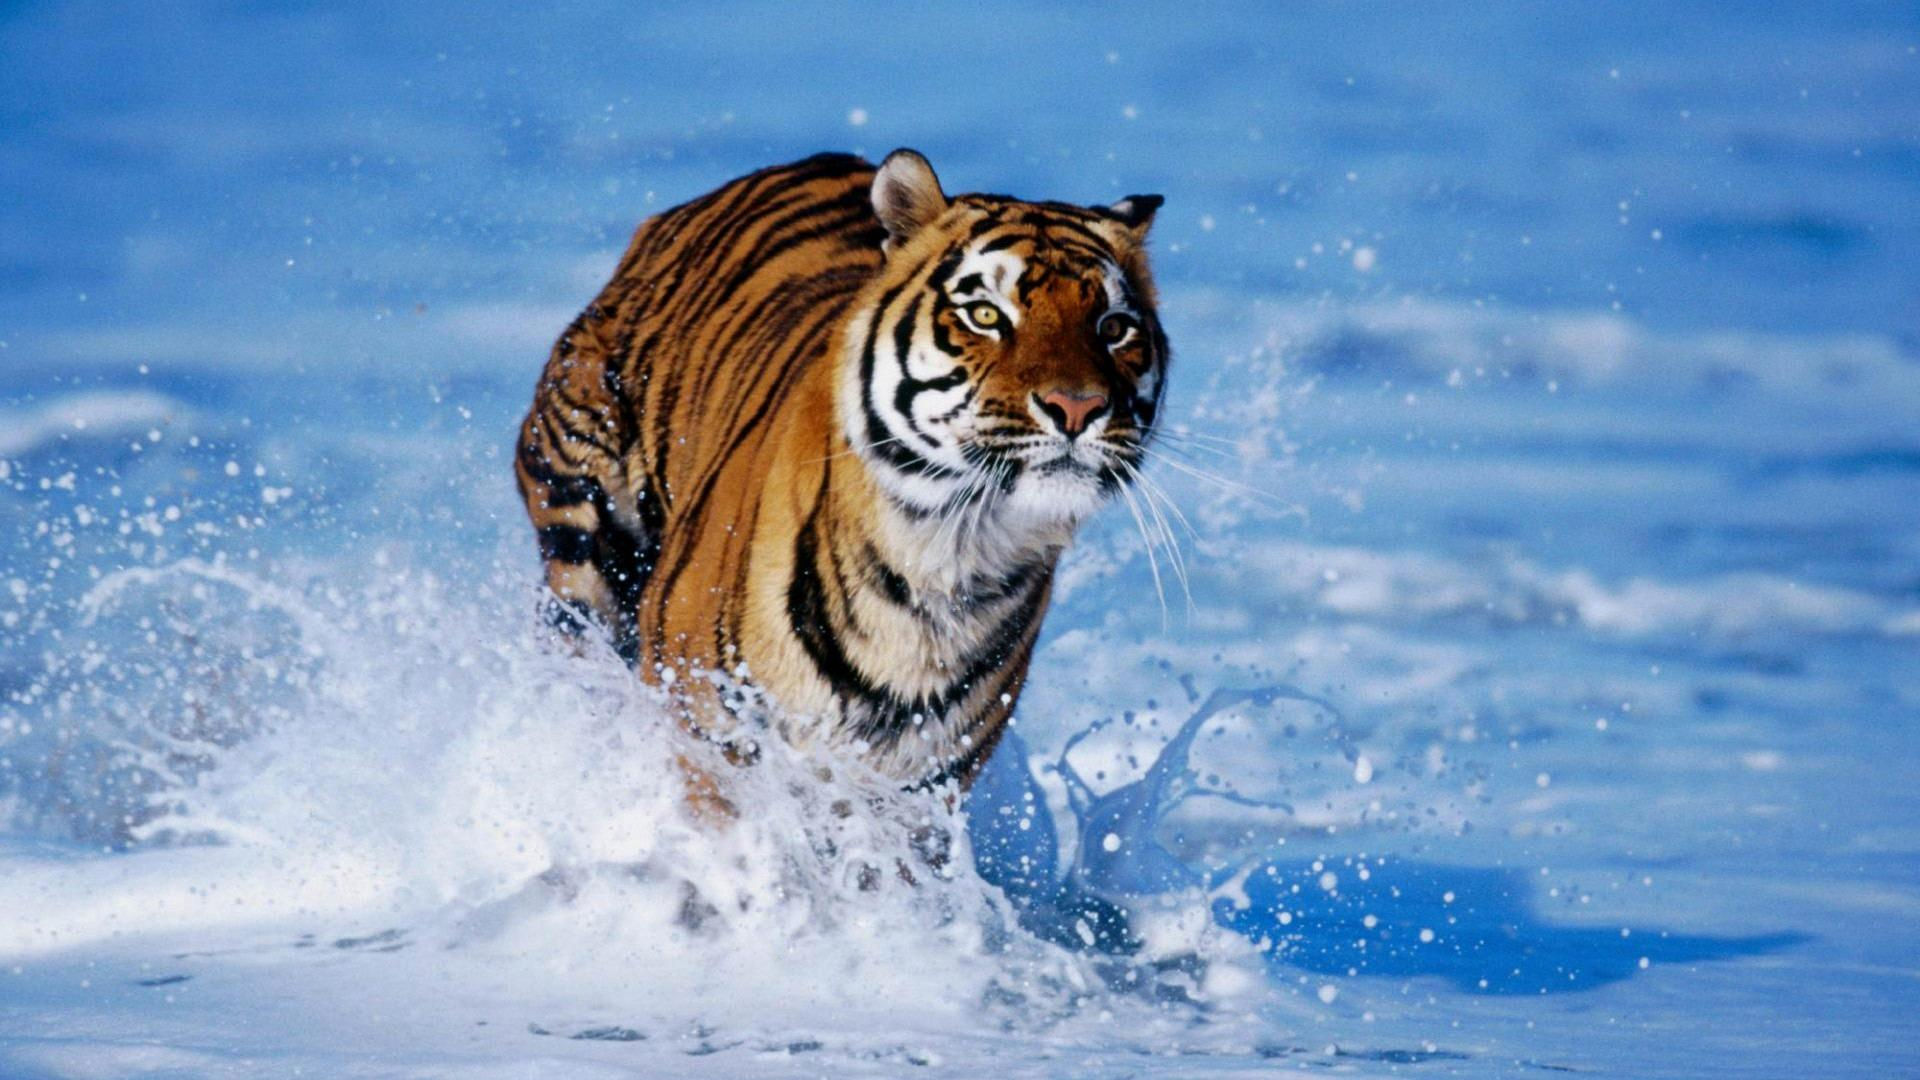 Cool Animal Wallpaper Light Images Free Download 1920x1080